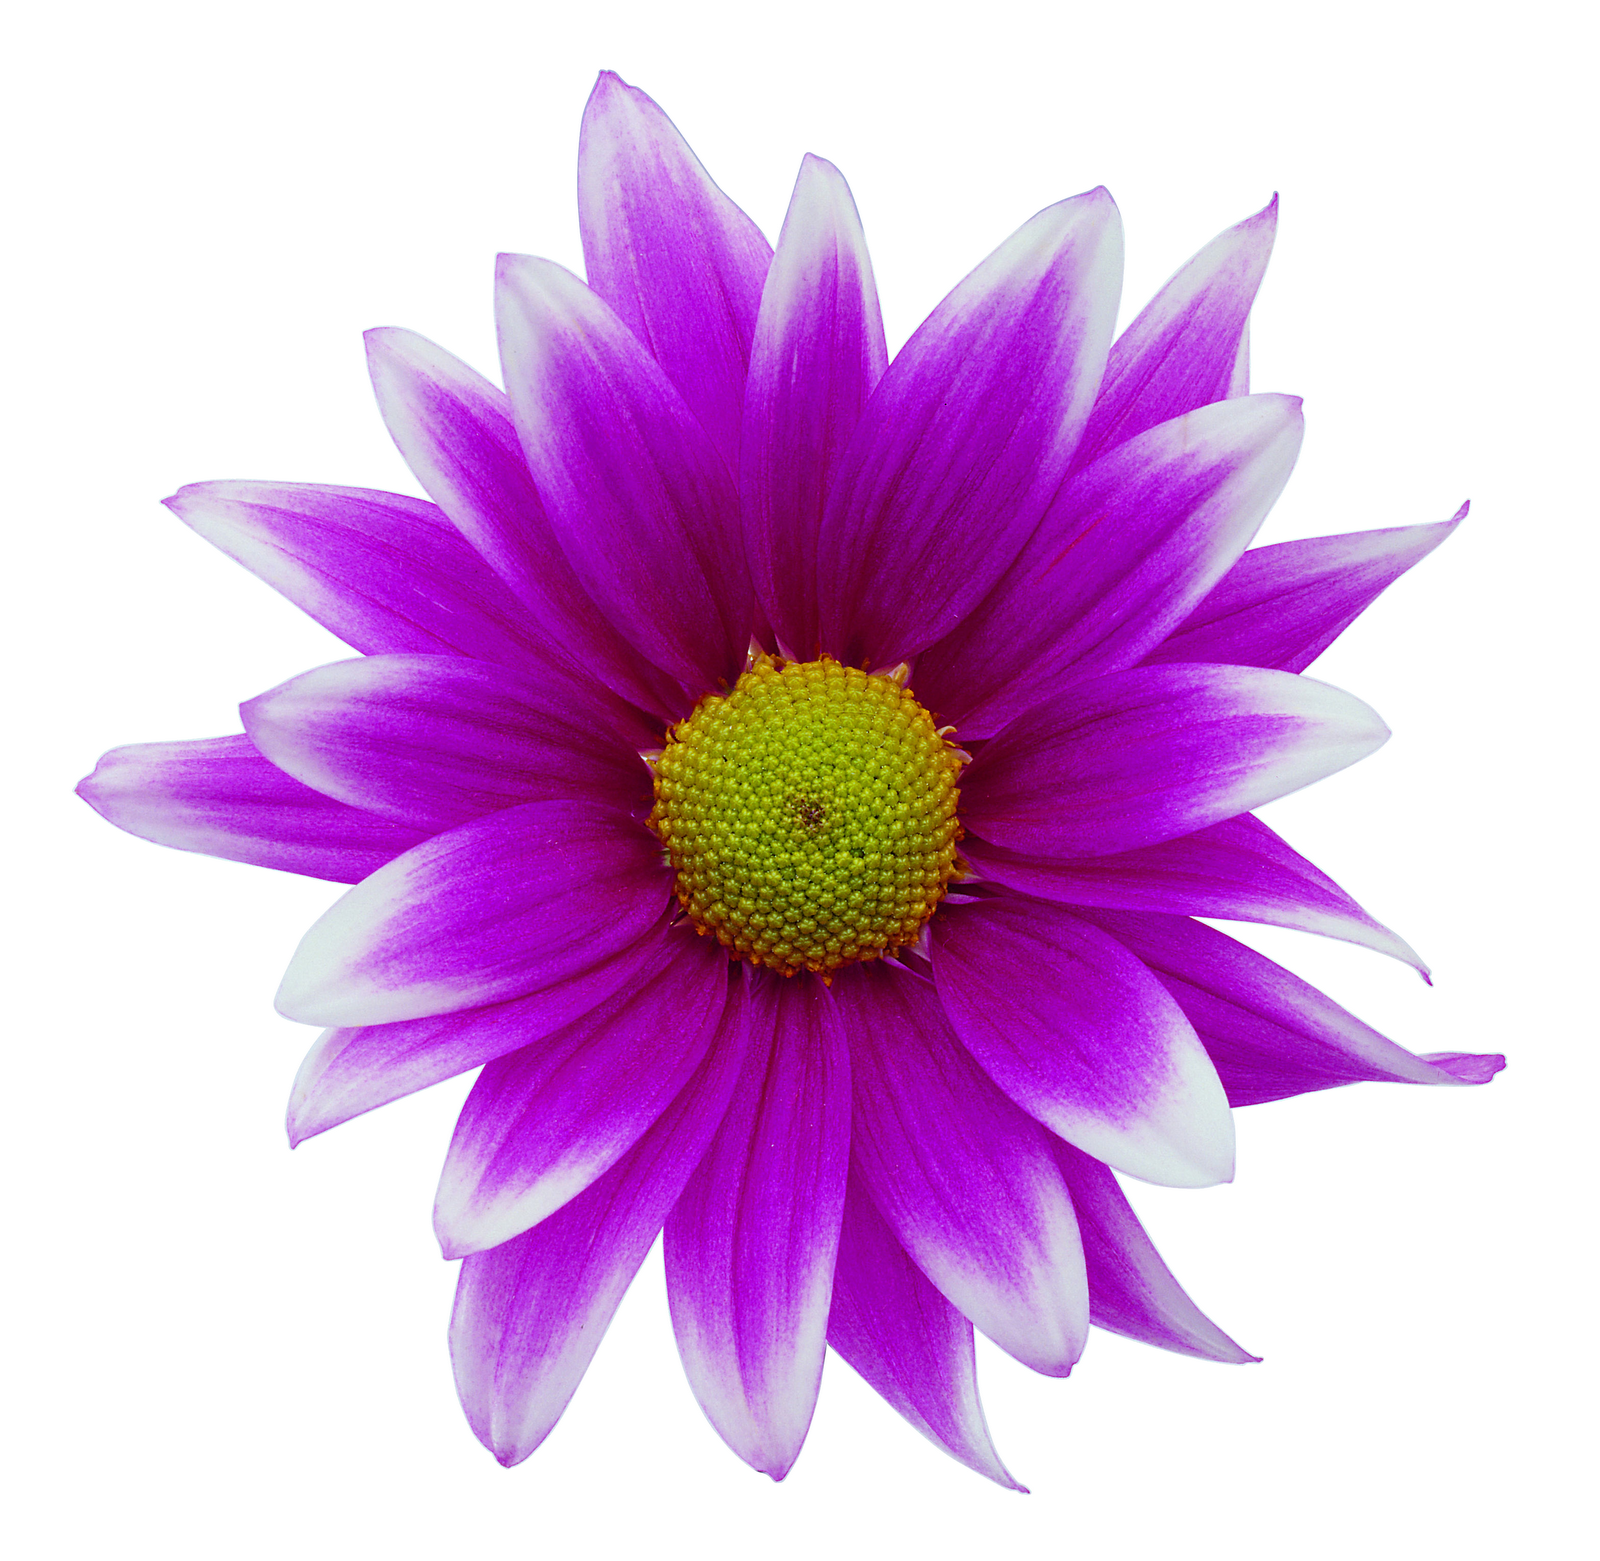 Free High Resolution graphics and clip artFlower Clipart